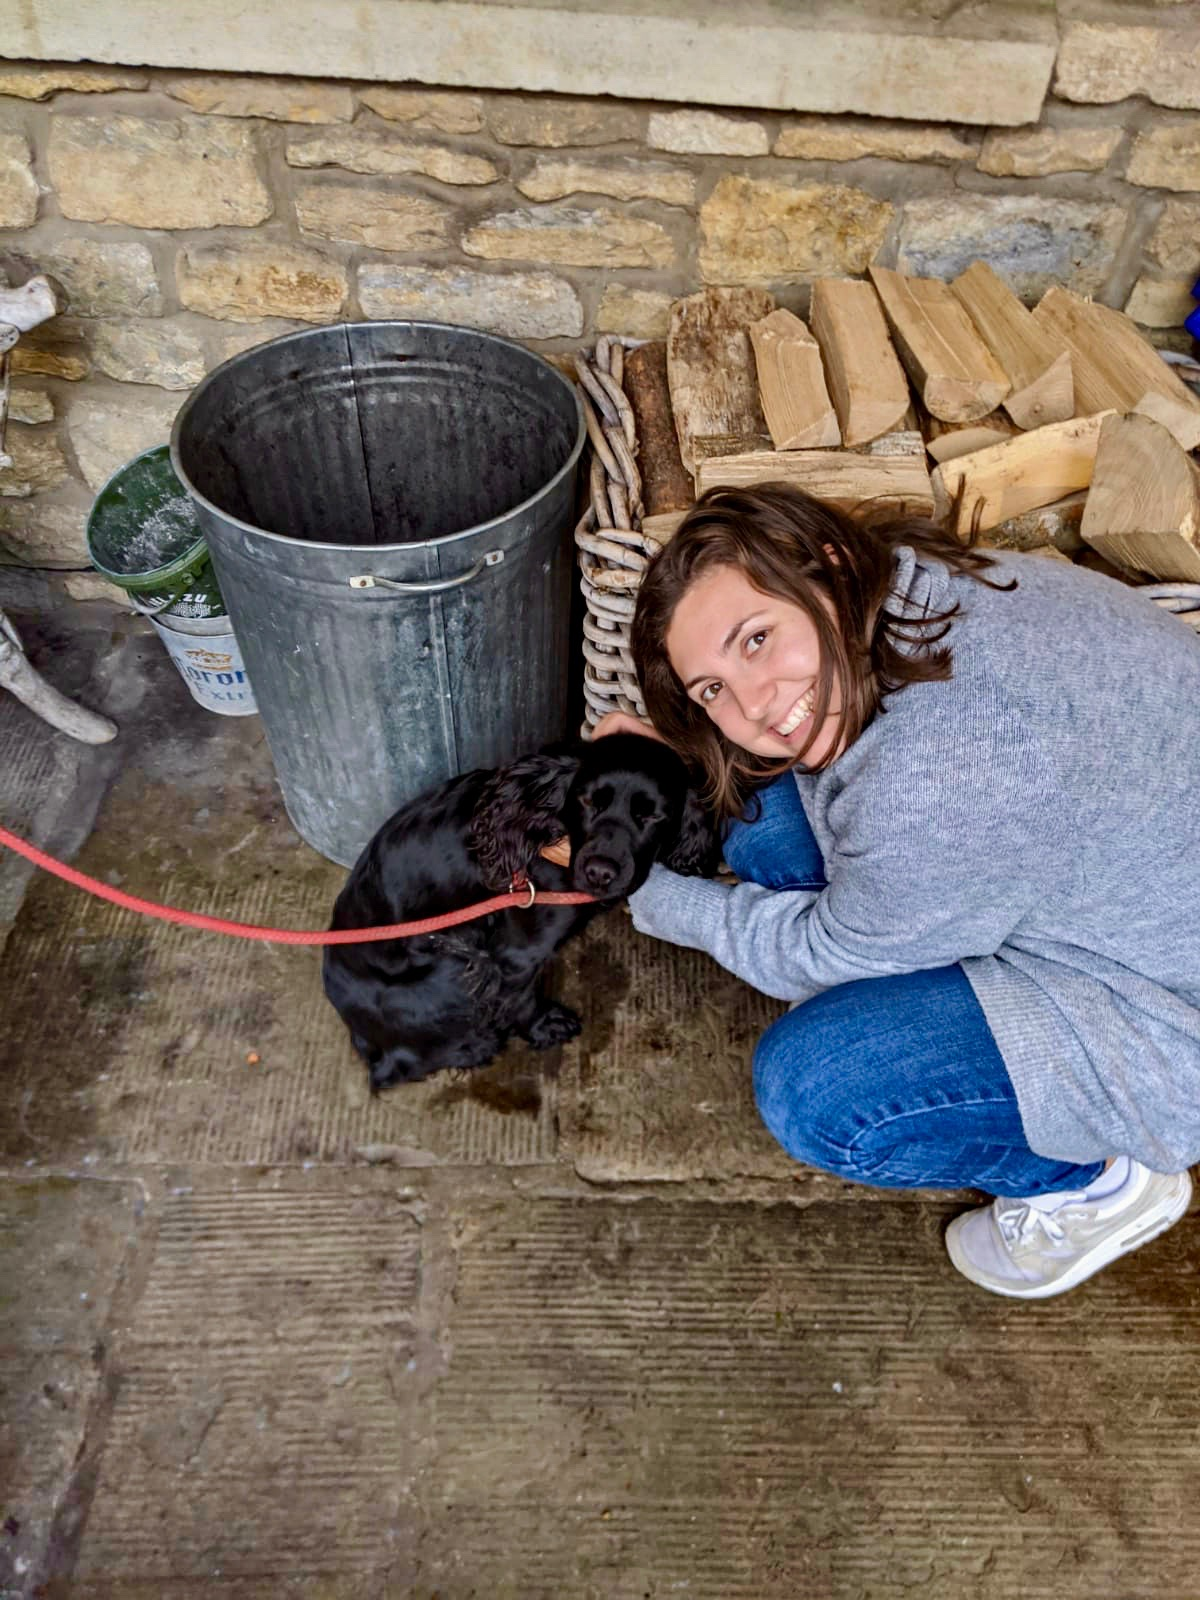 Nell crouching down outside the pheasant hotel Harome stroking a dark brown spaniel puppy. Nell and the puppy are both looking up at the camera and smiling.